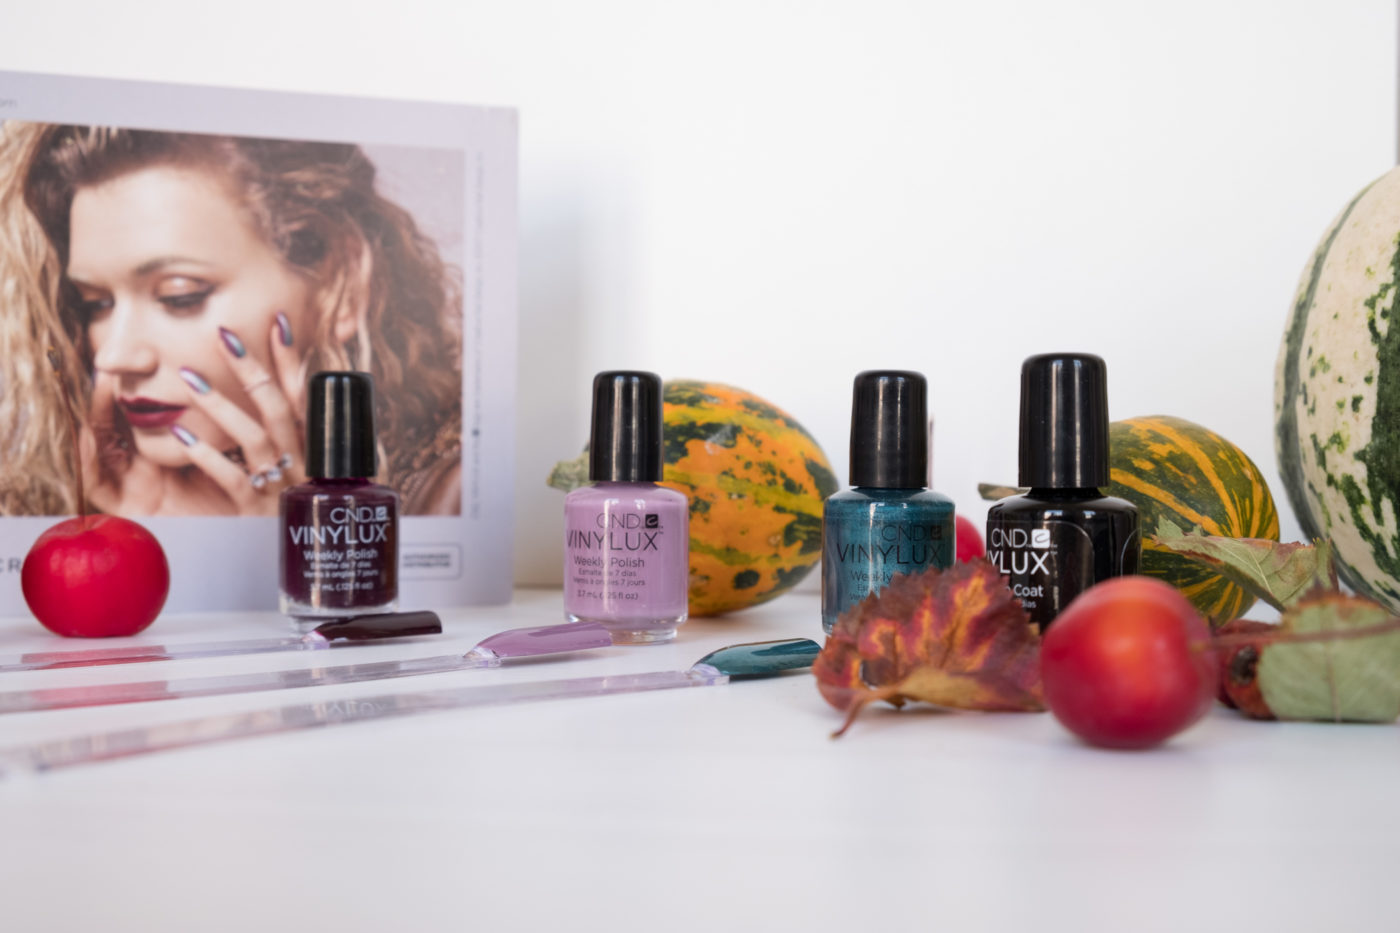 Cnd Vinylux Nightspell Collection The Colourful Bouquet